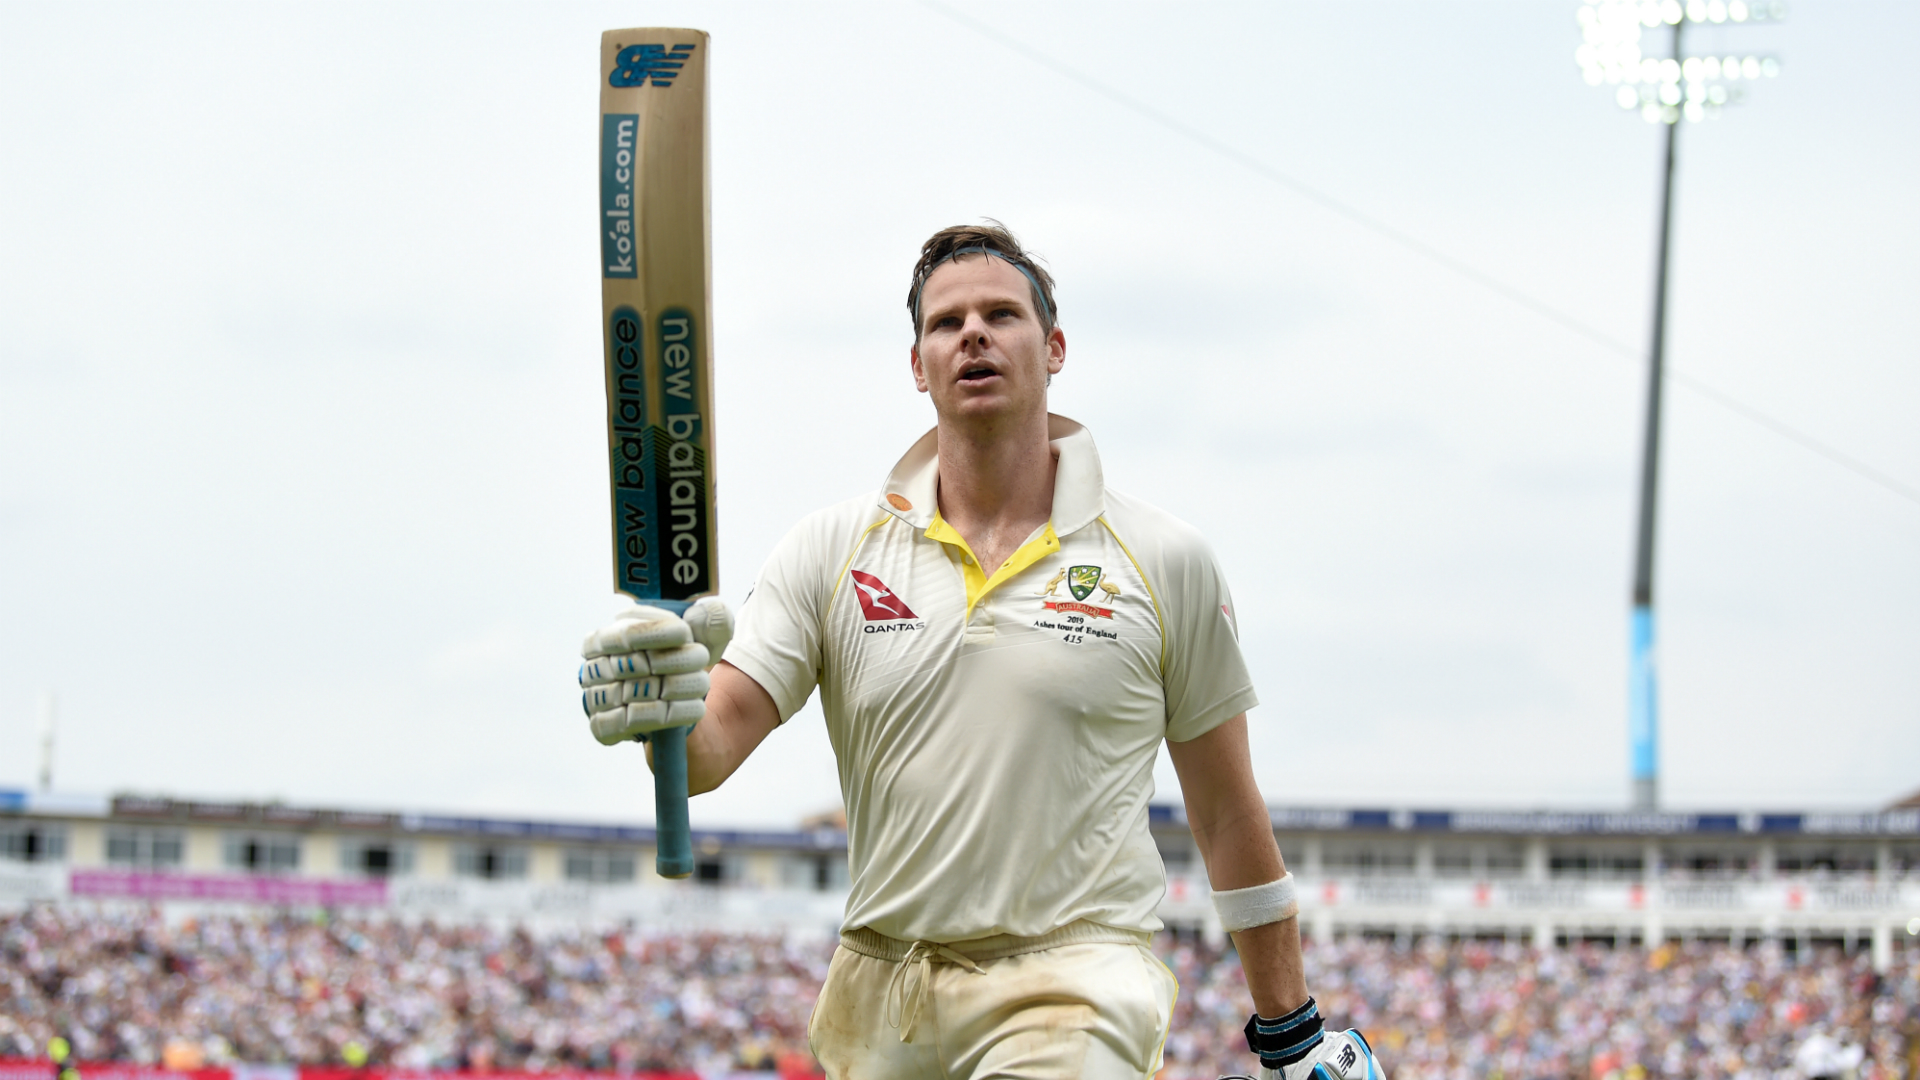 Ashes 2019: I didn't know if I still had it in me, admits emotional Smith